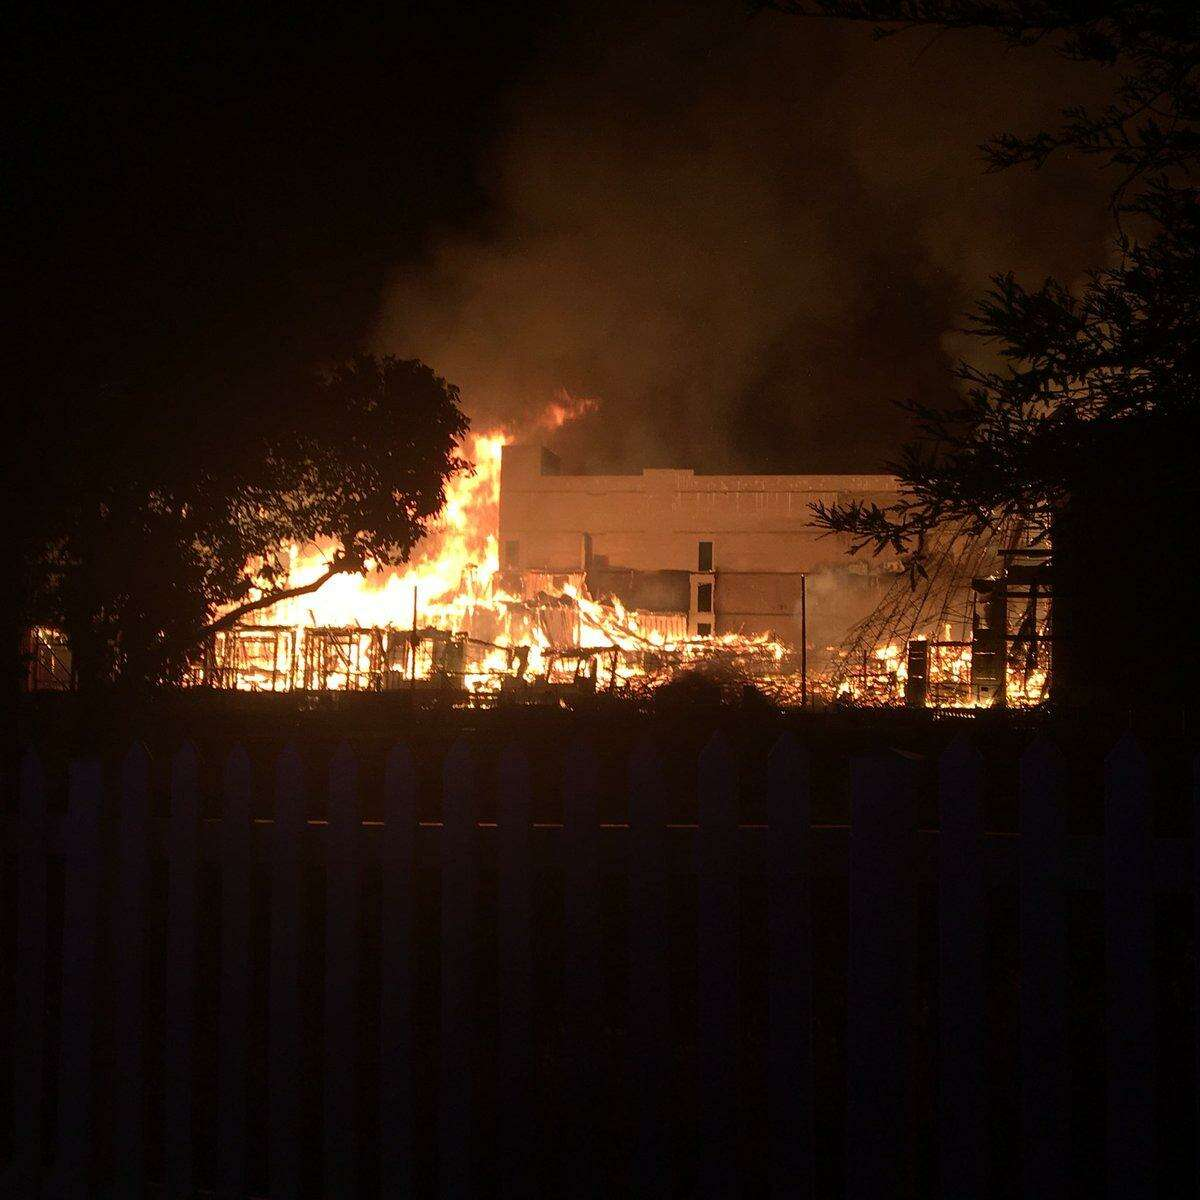 A major fire in Concord destroyed an apartment building that was under construction in the early hours of April 24, 2018. On Wednesday, investigators announced that the fire was caused by arson.